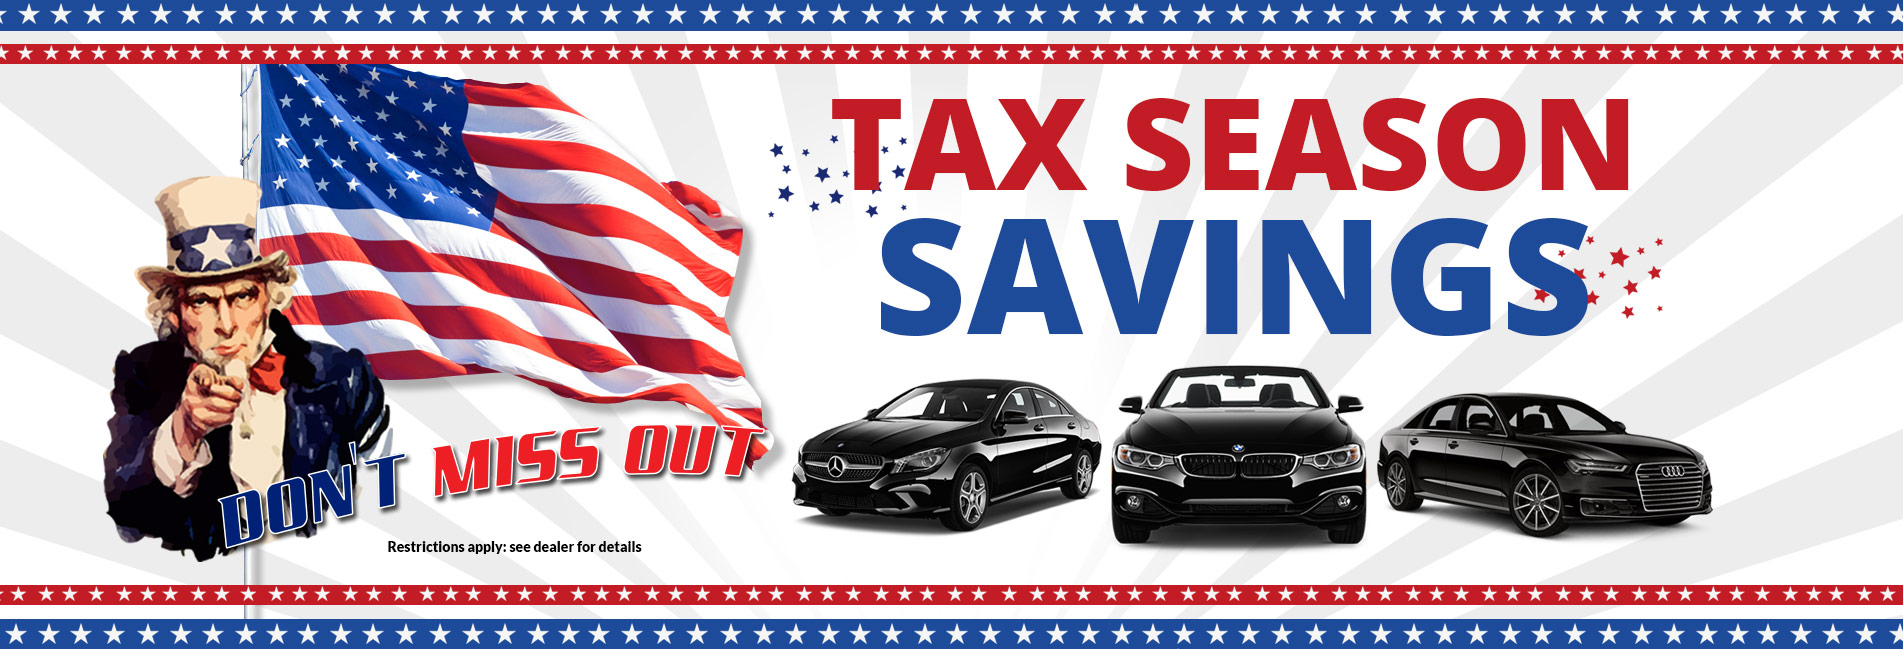 Sales Tax On Cars In Nj